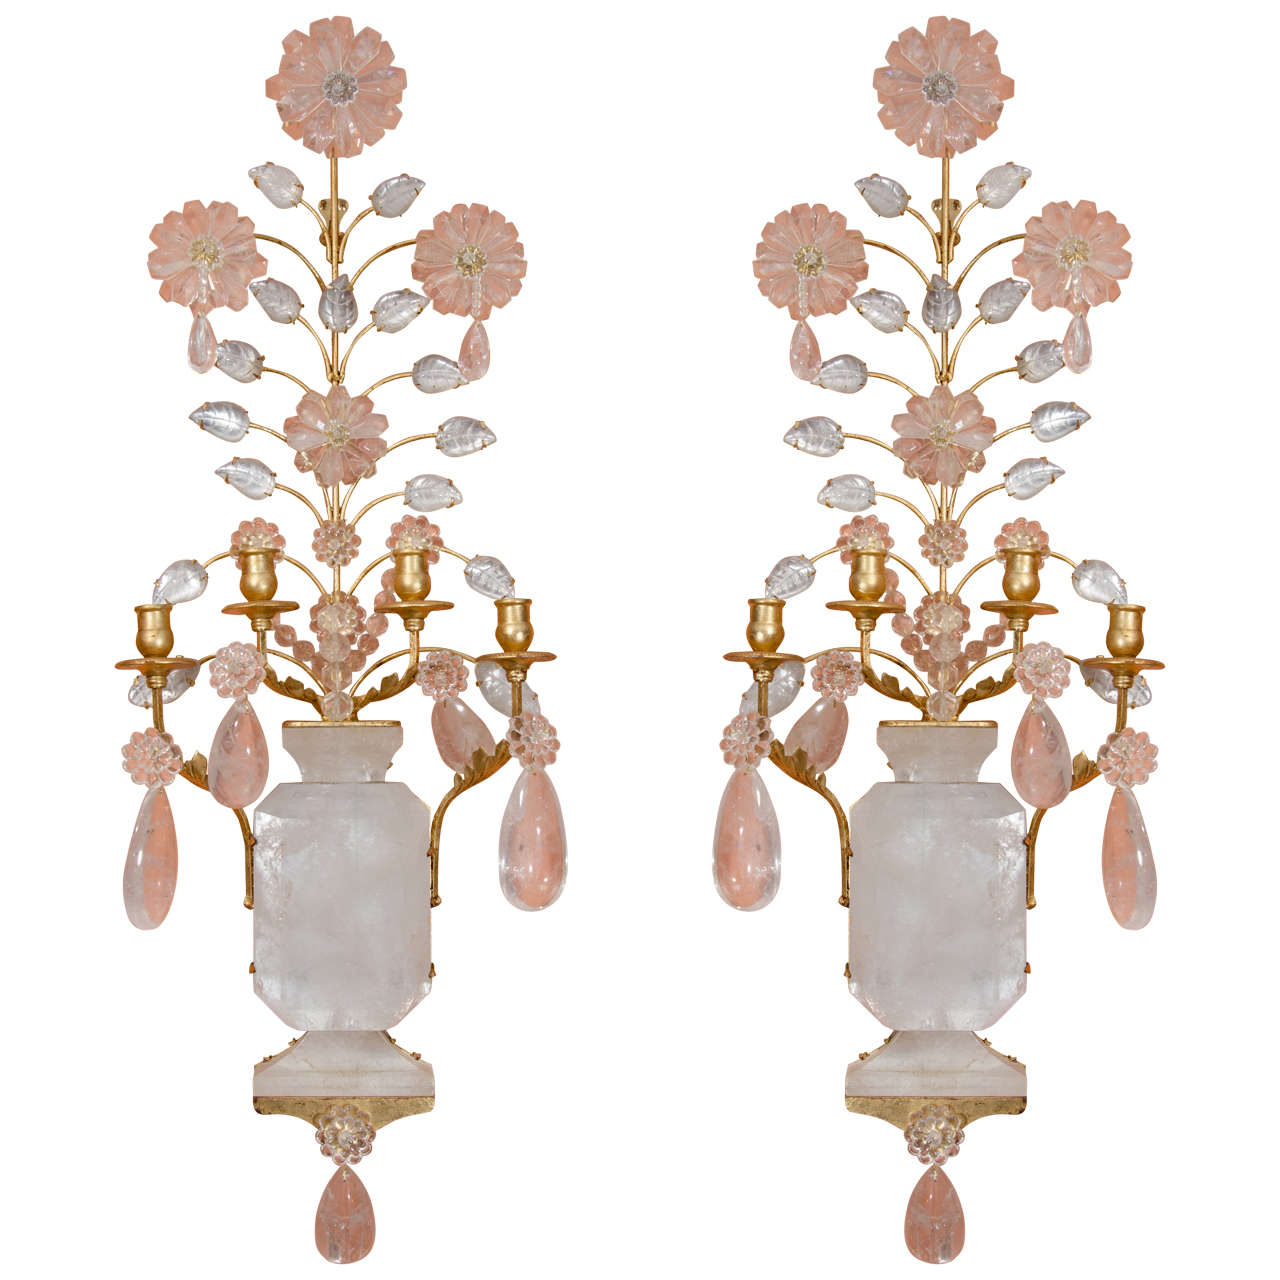 Pair of Rock Crystal Sconces For Sale at 1stdibs